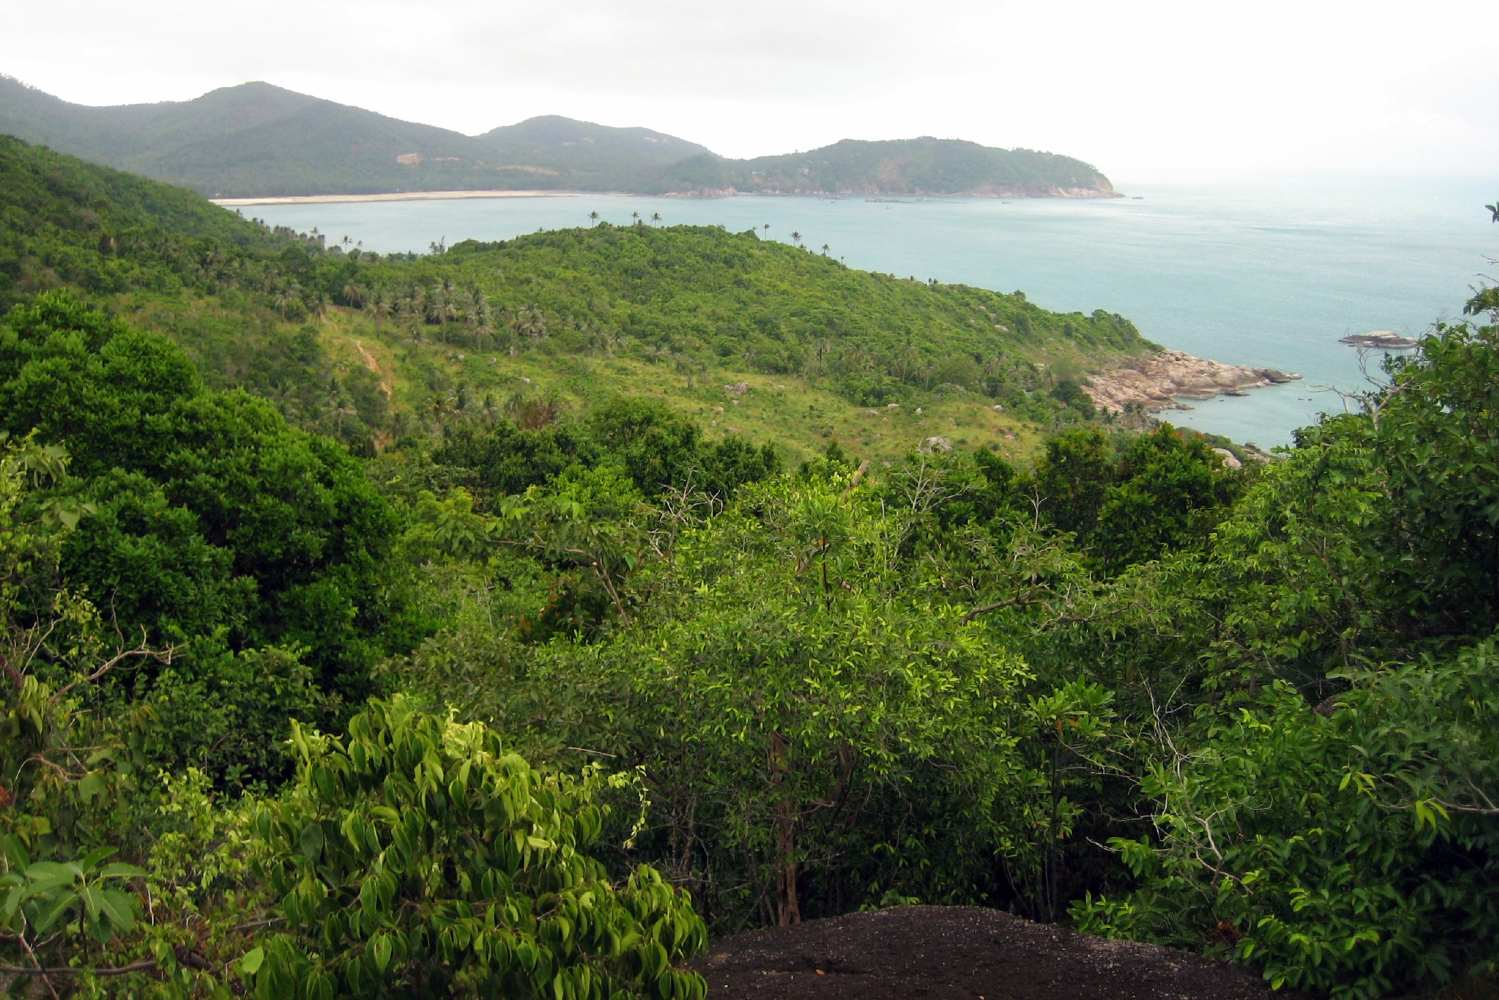 The jungle at Bottle Beach on Koh Phangan seen from the viewpoint